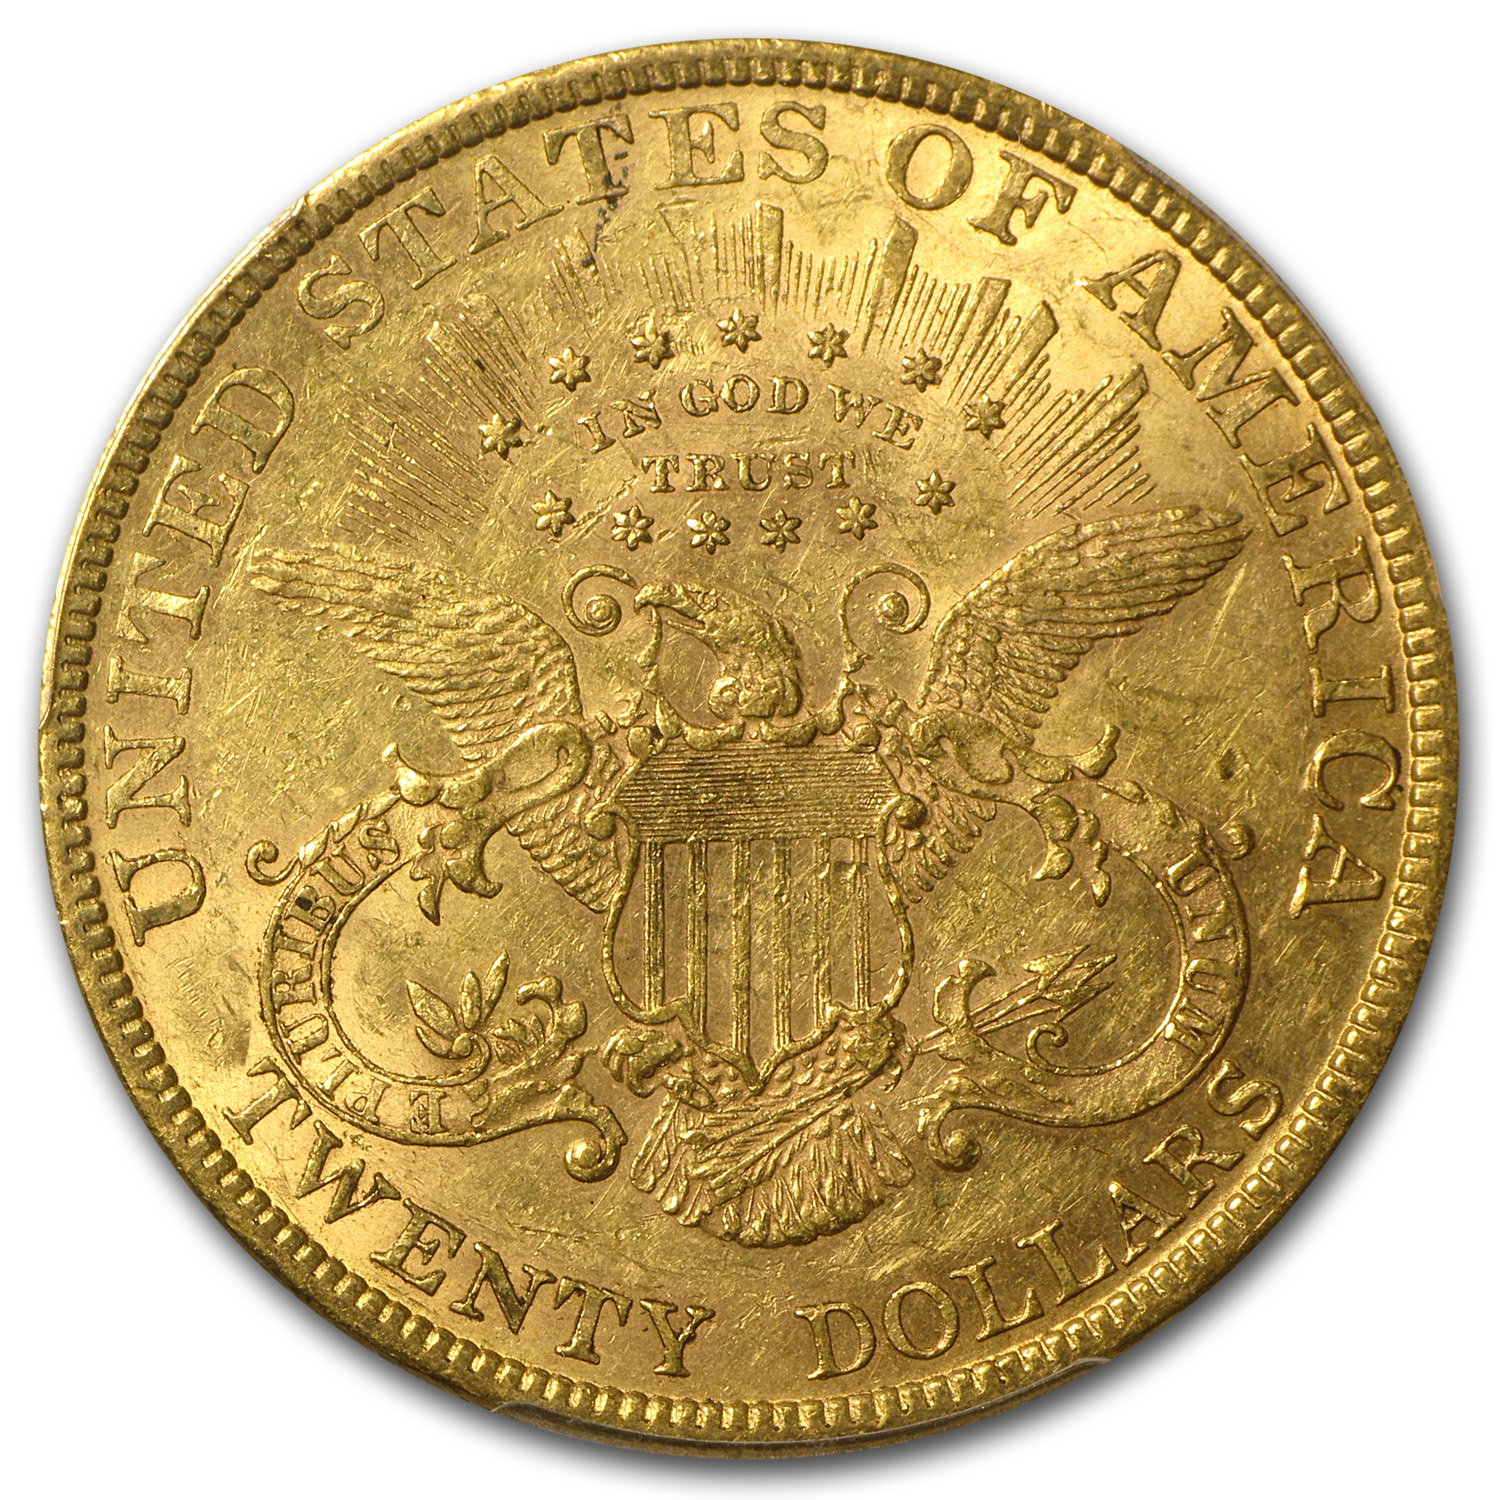 1880 $20 Liberty Gold Double Eagle AU-55 PCGS